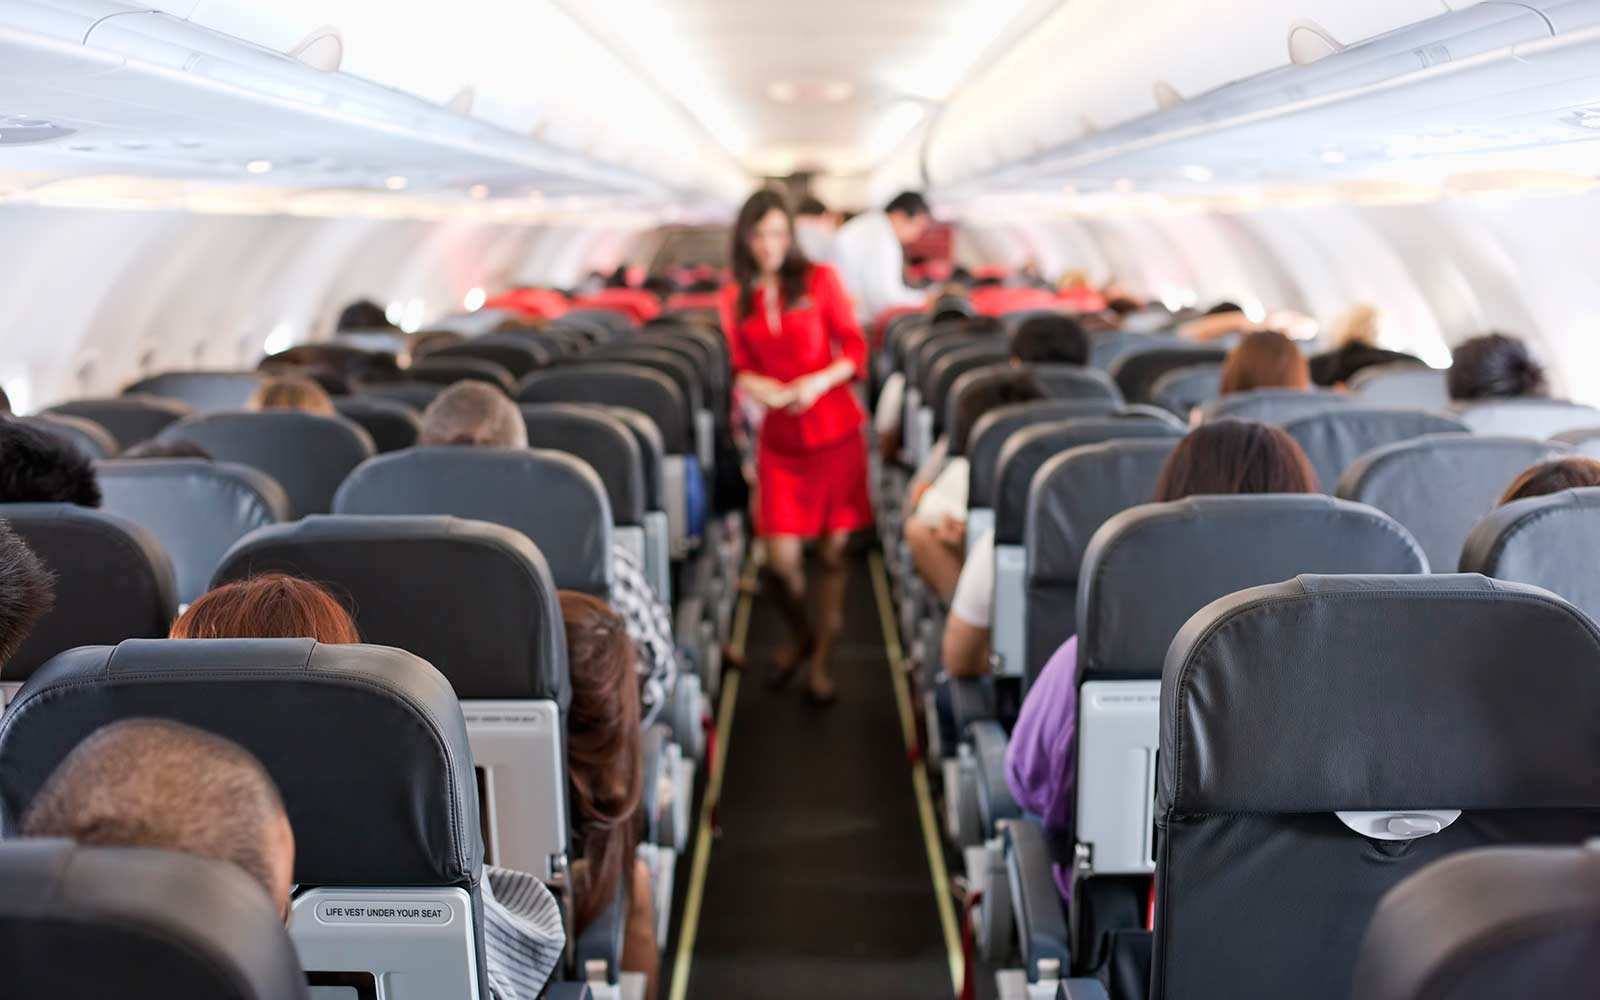 How to Survive a Plane Crash, According to a Former Flight Attendant